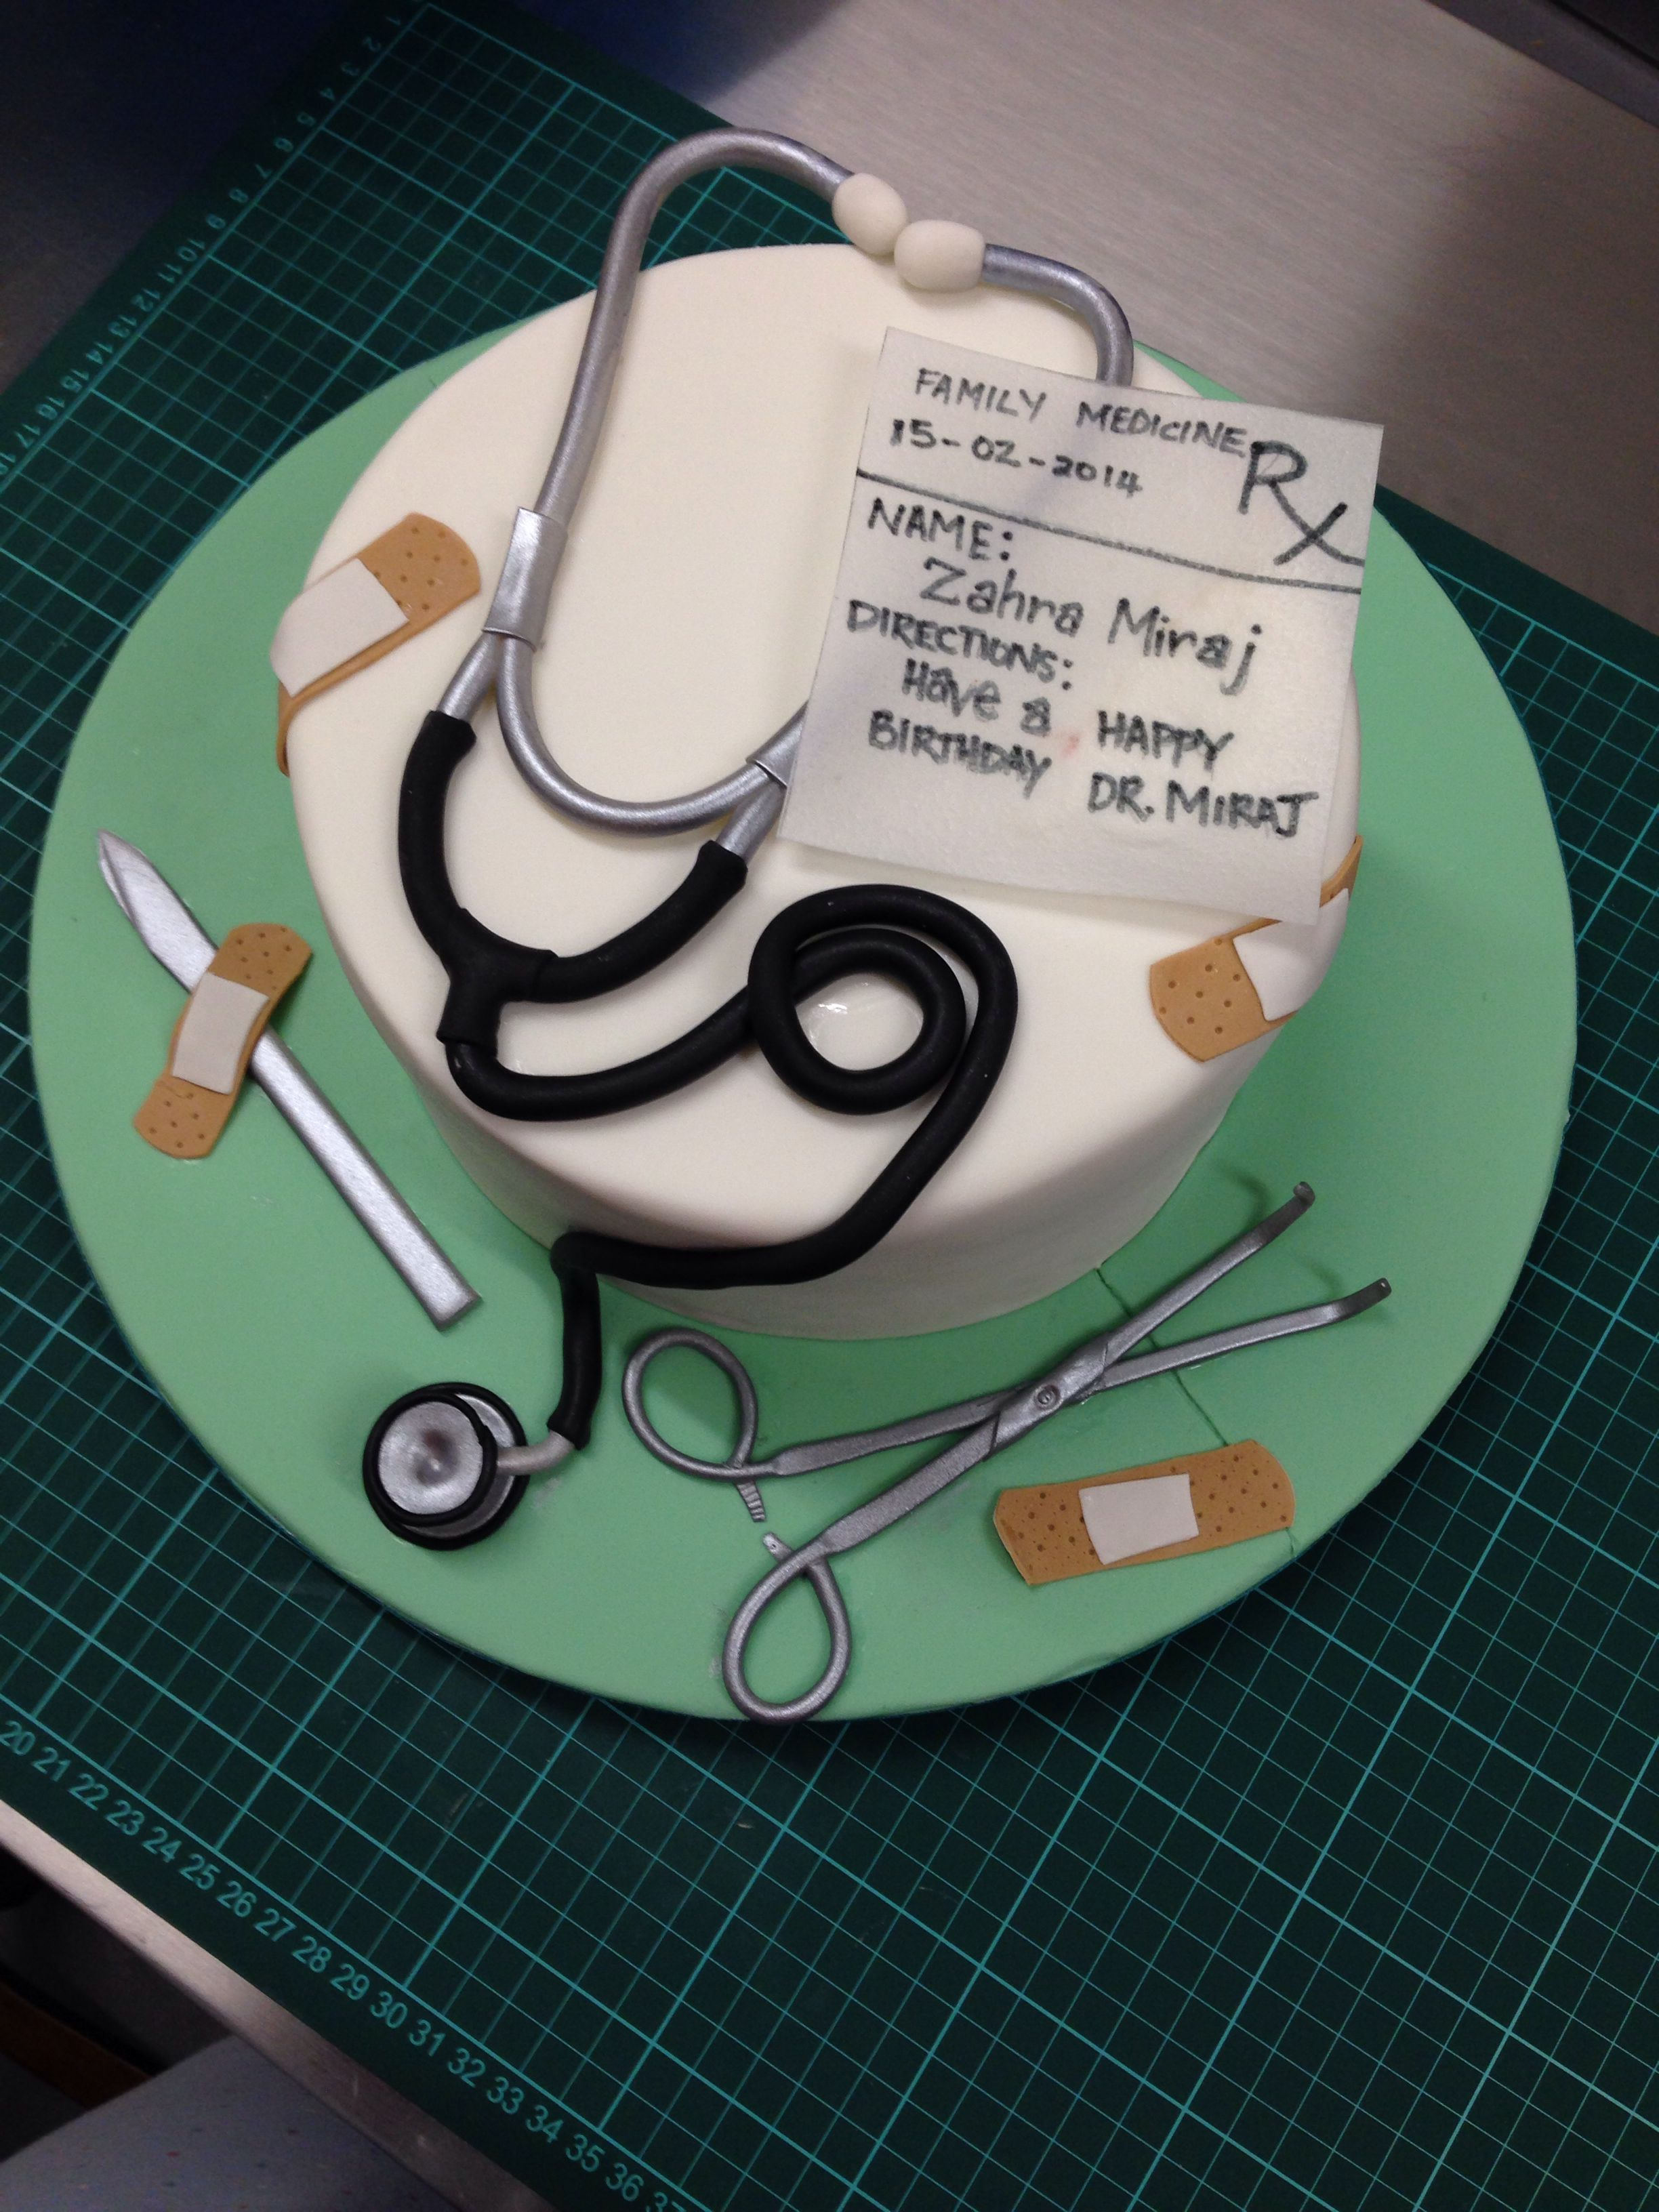 Incredible Doctor Surgeon Cake With Images Doctor Birthday Cake Birthday Cards Printable Trancafe Filternl